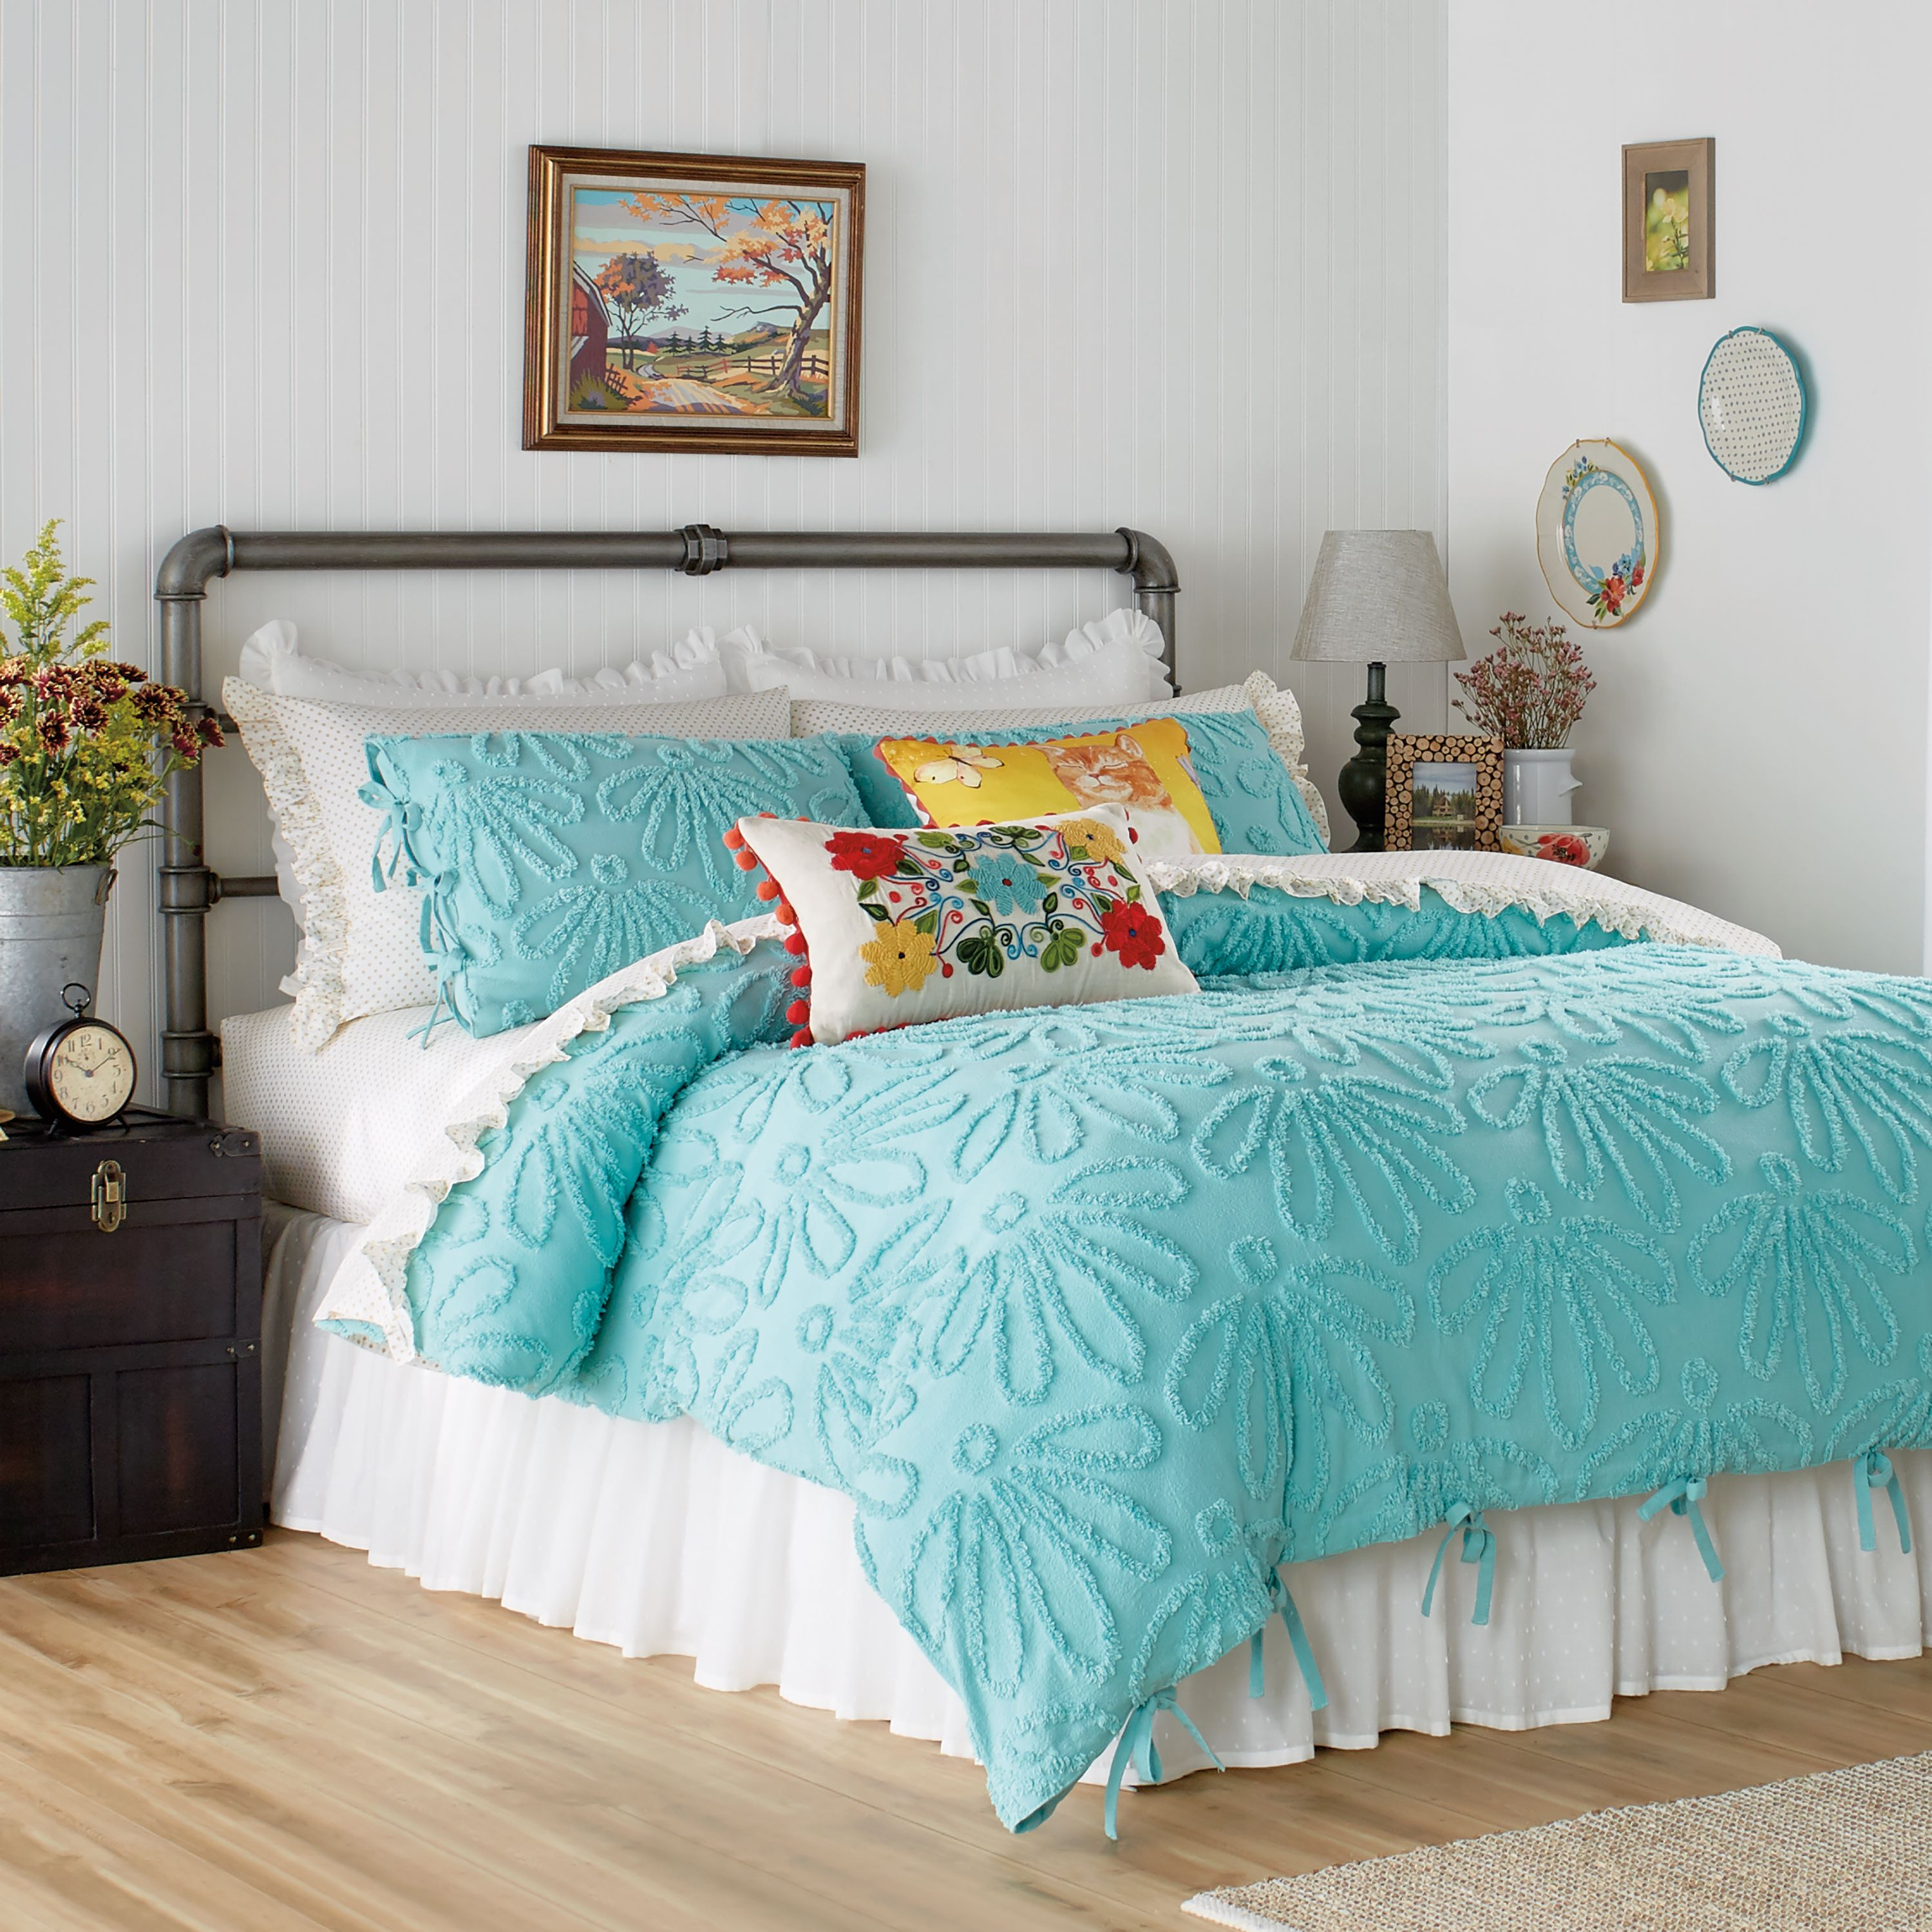 Walmart Bedding Sets Full.The Pioneer Woman Country Chenille Duvet Set Full Queen